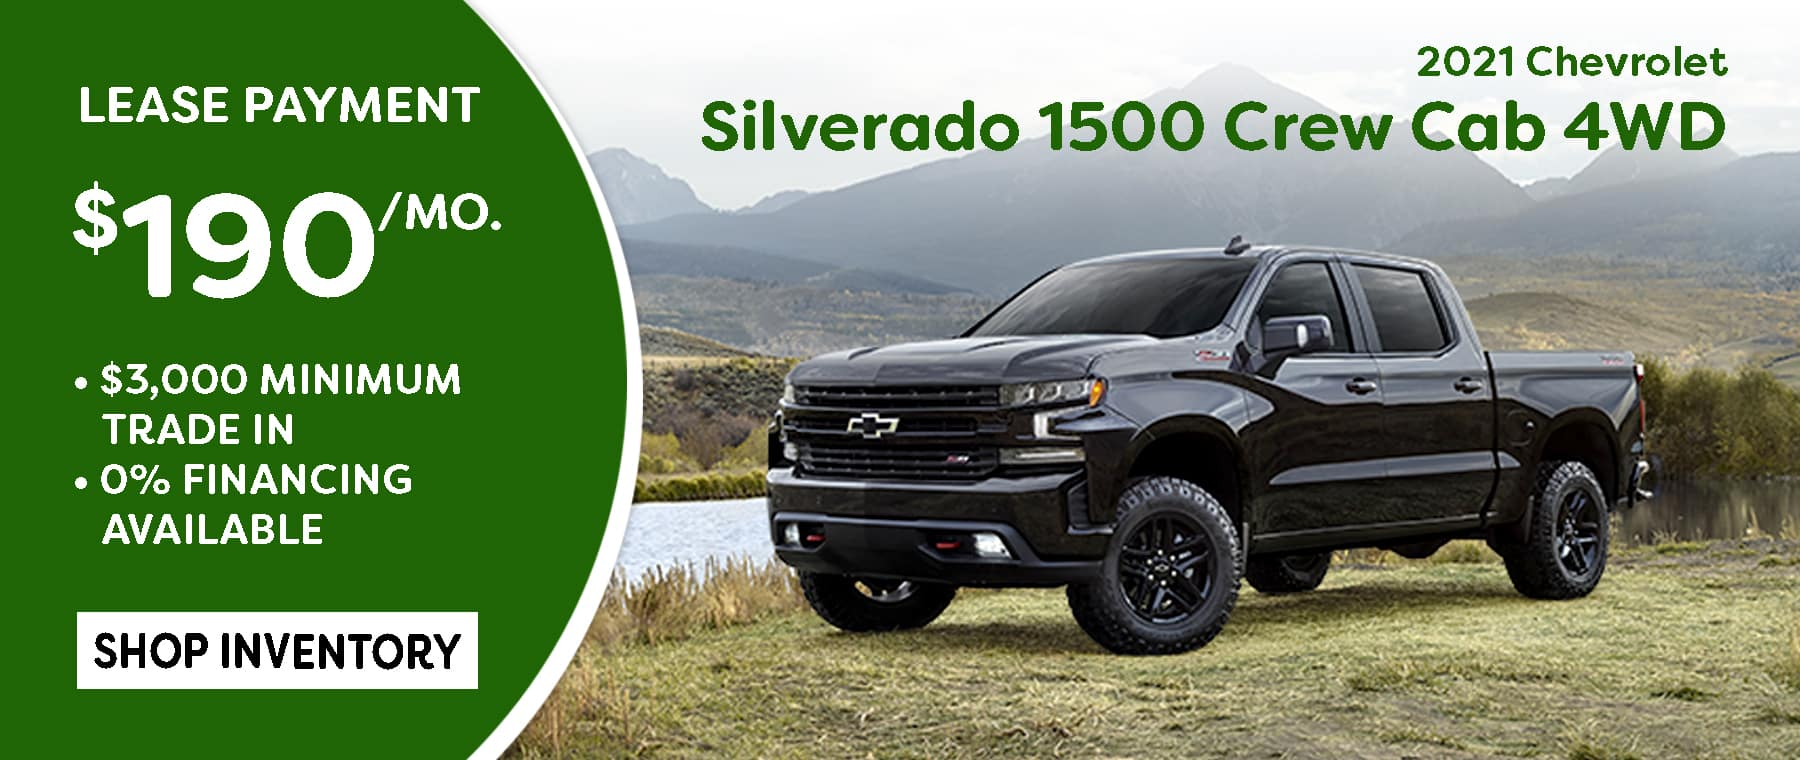 March Silverado Crew Cab Lease Special $190/mo*